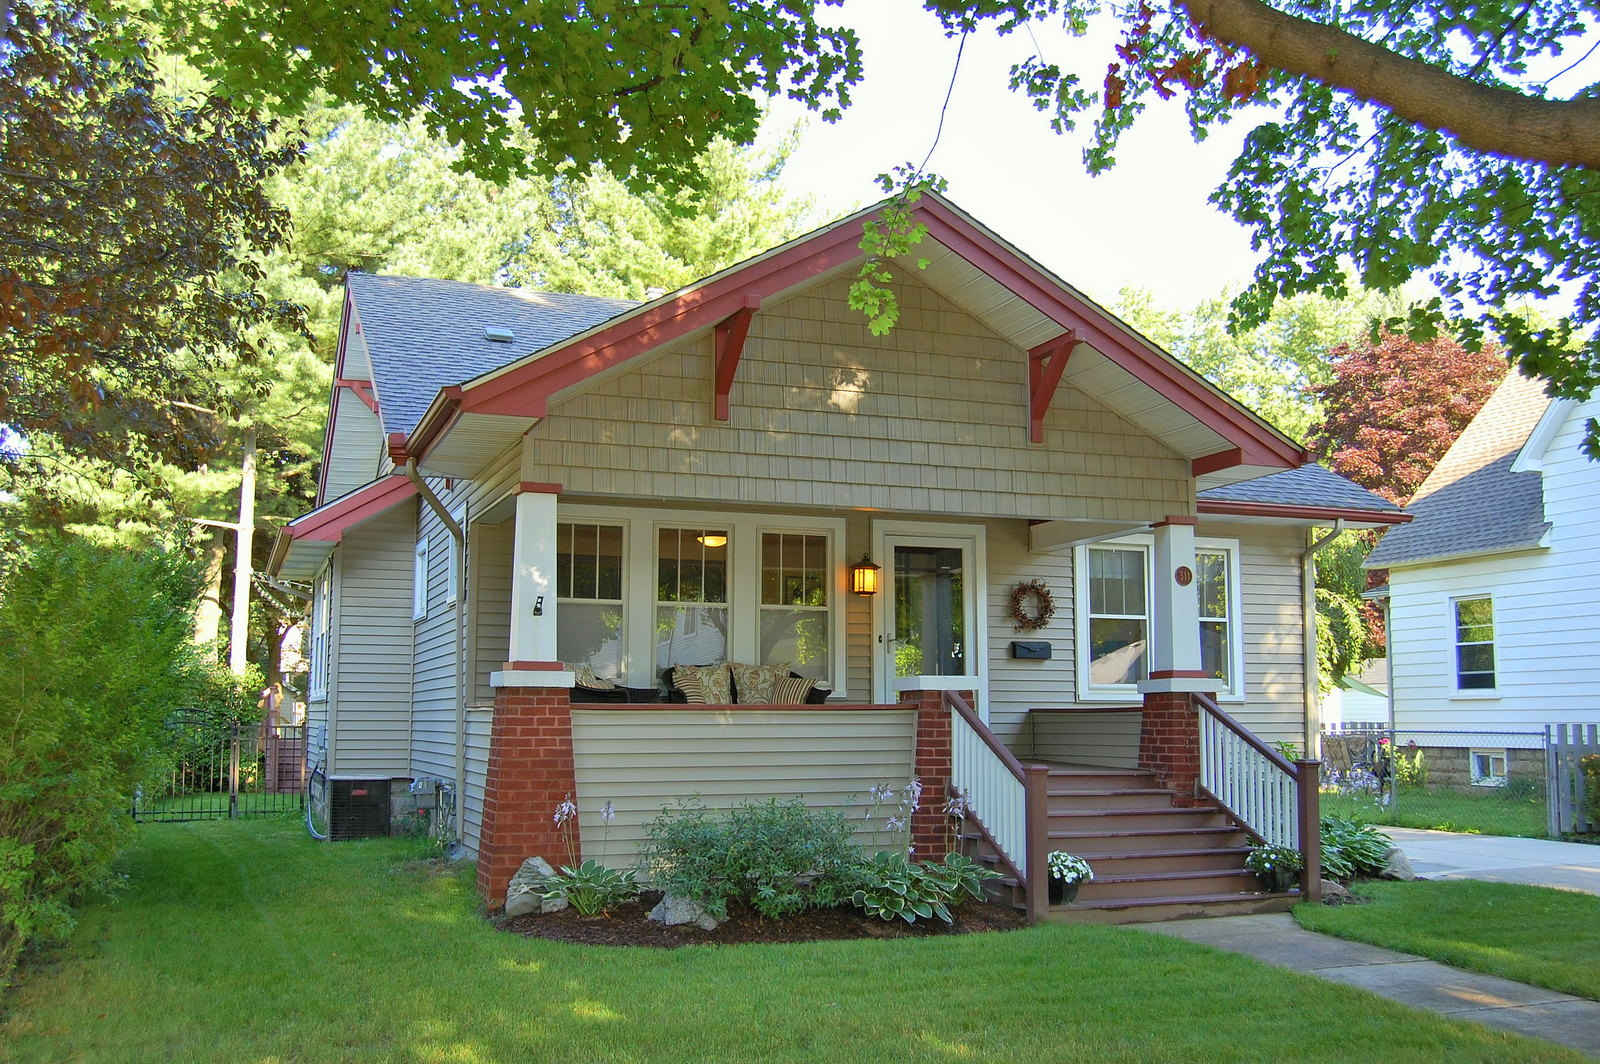 Sold 311 N Harvey St Fully Updated Craftsman Style